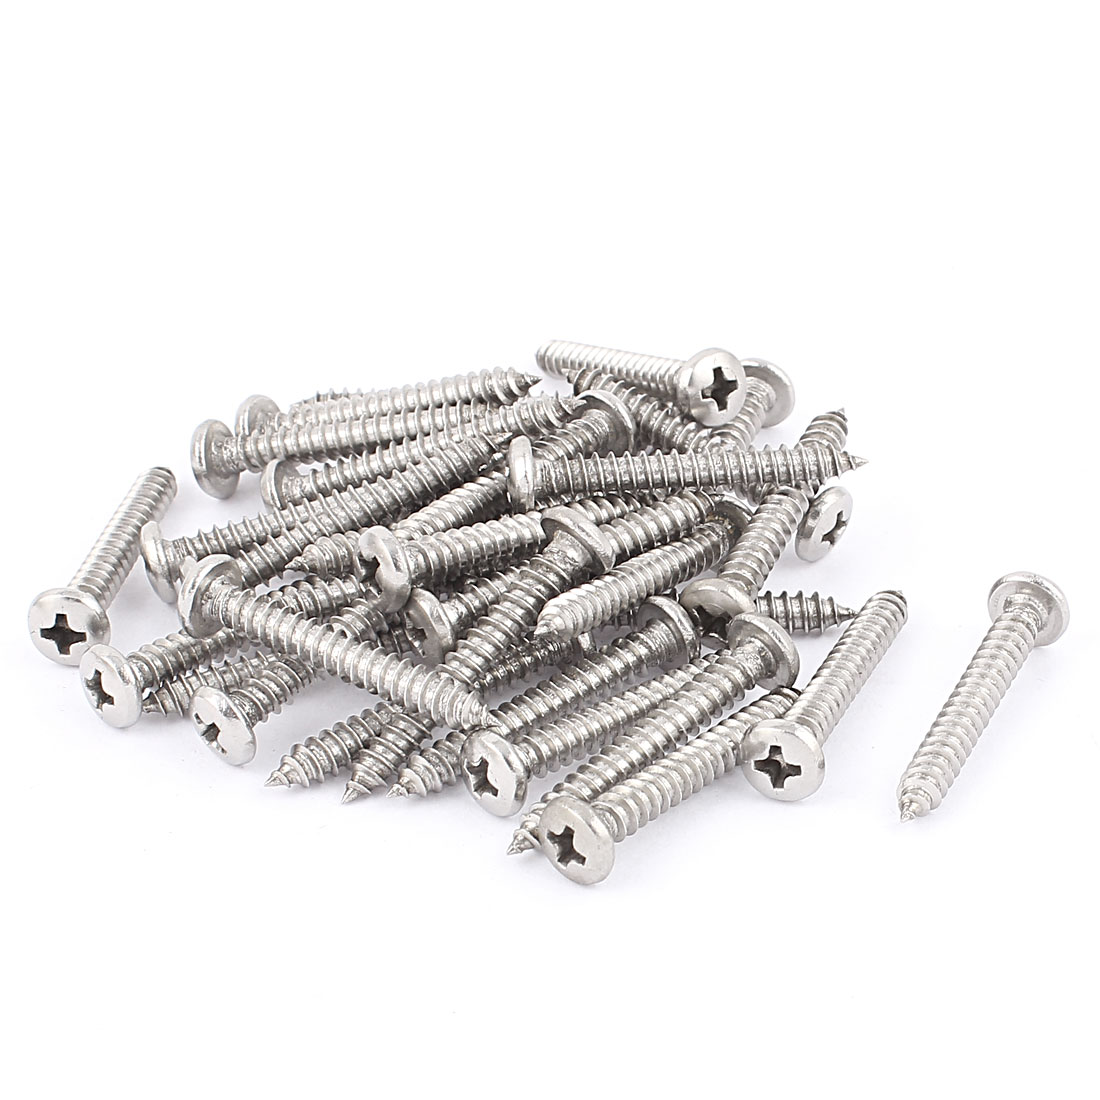 4.8mm x 37mm Phillips Cross Drive Pan Head Self Tapping Screw Fasteners Silver Tone 35 Pcs